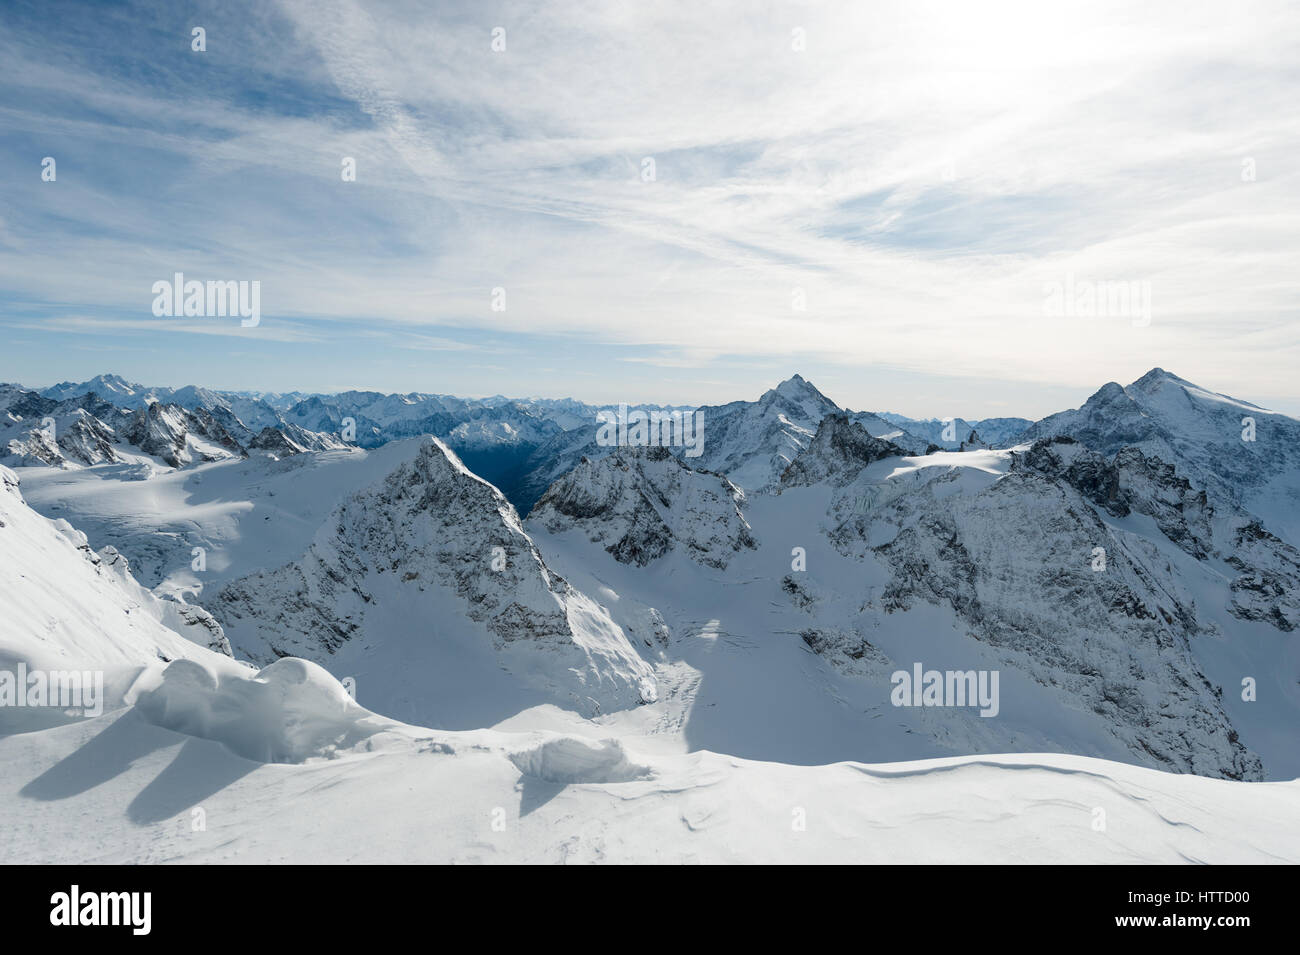 Scenery of snow covered mountains valley Titlis, Engelberg, Switzerland Stock Photo